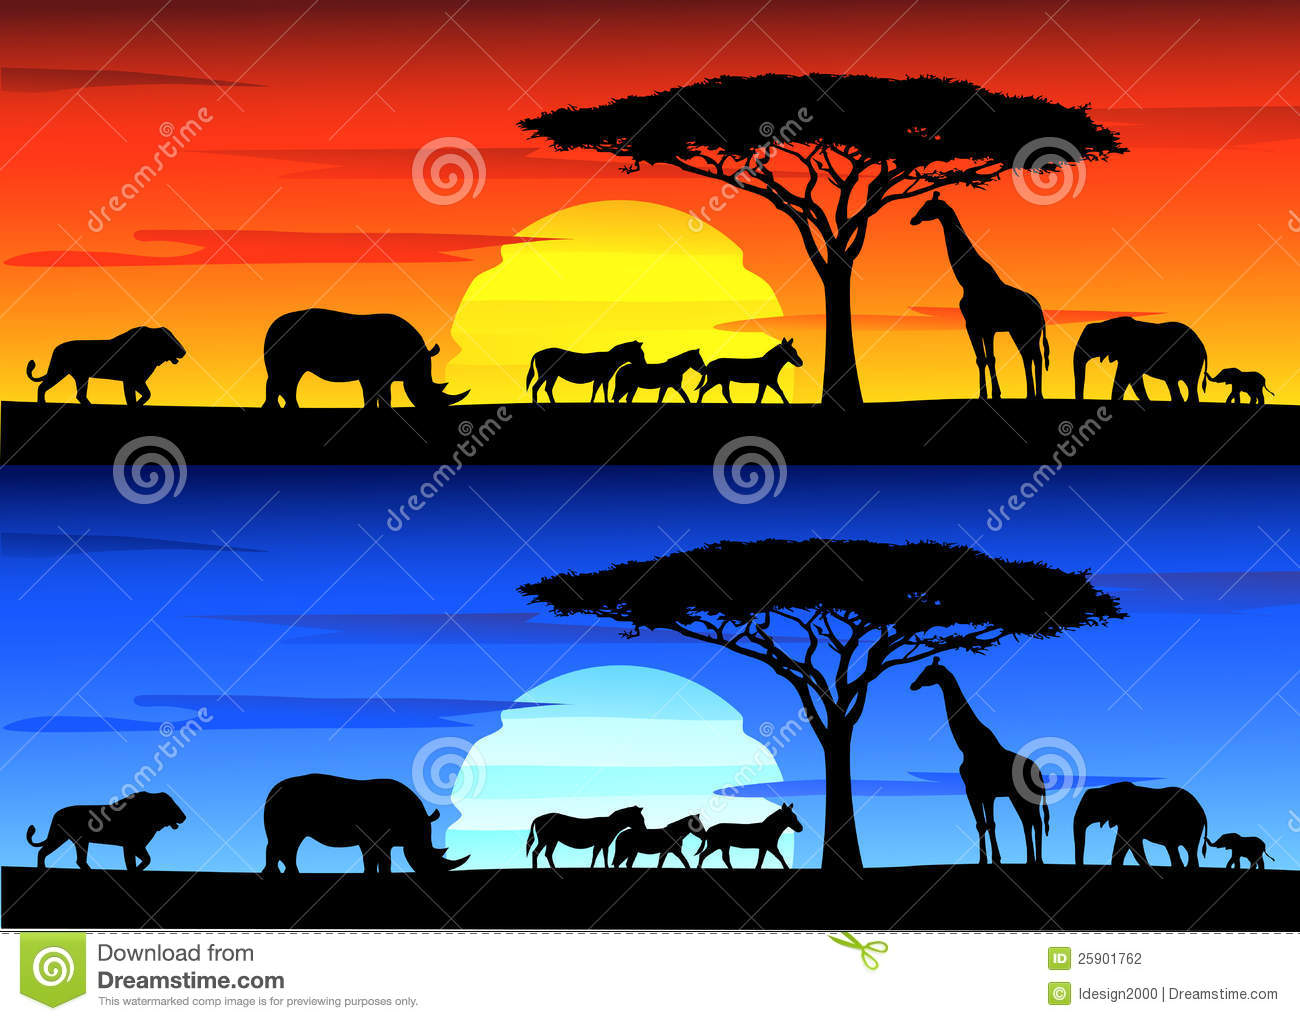 Wildlife Stock Photos on Africa wildlife